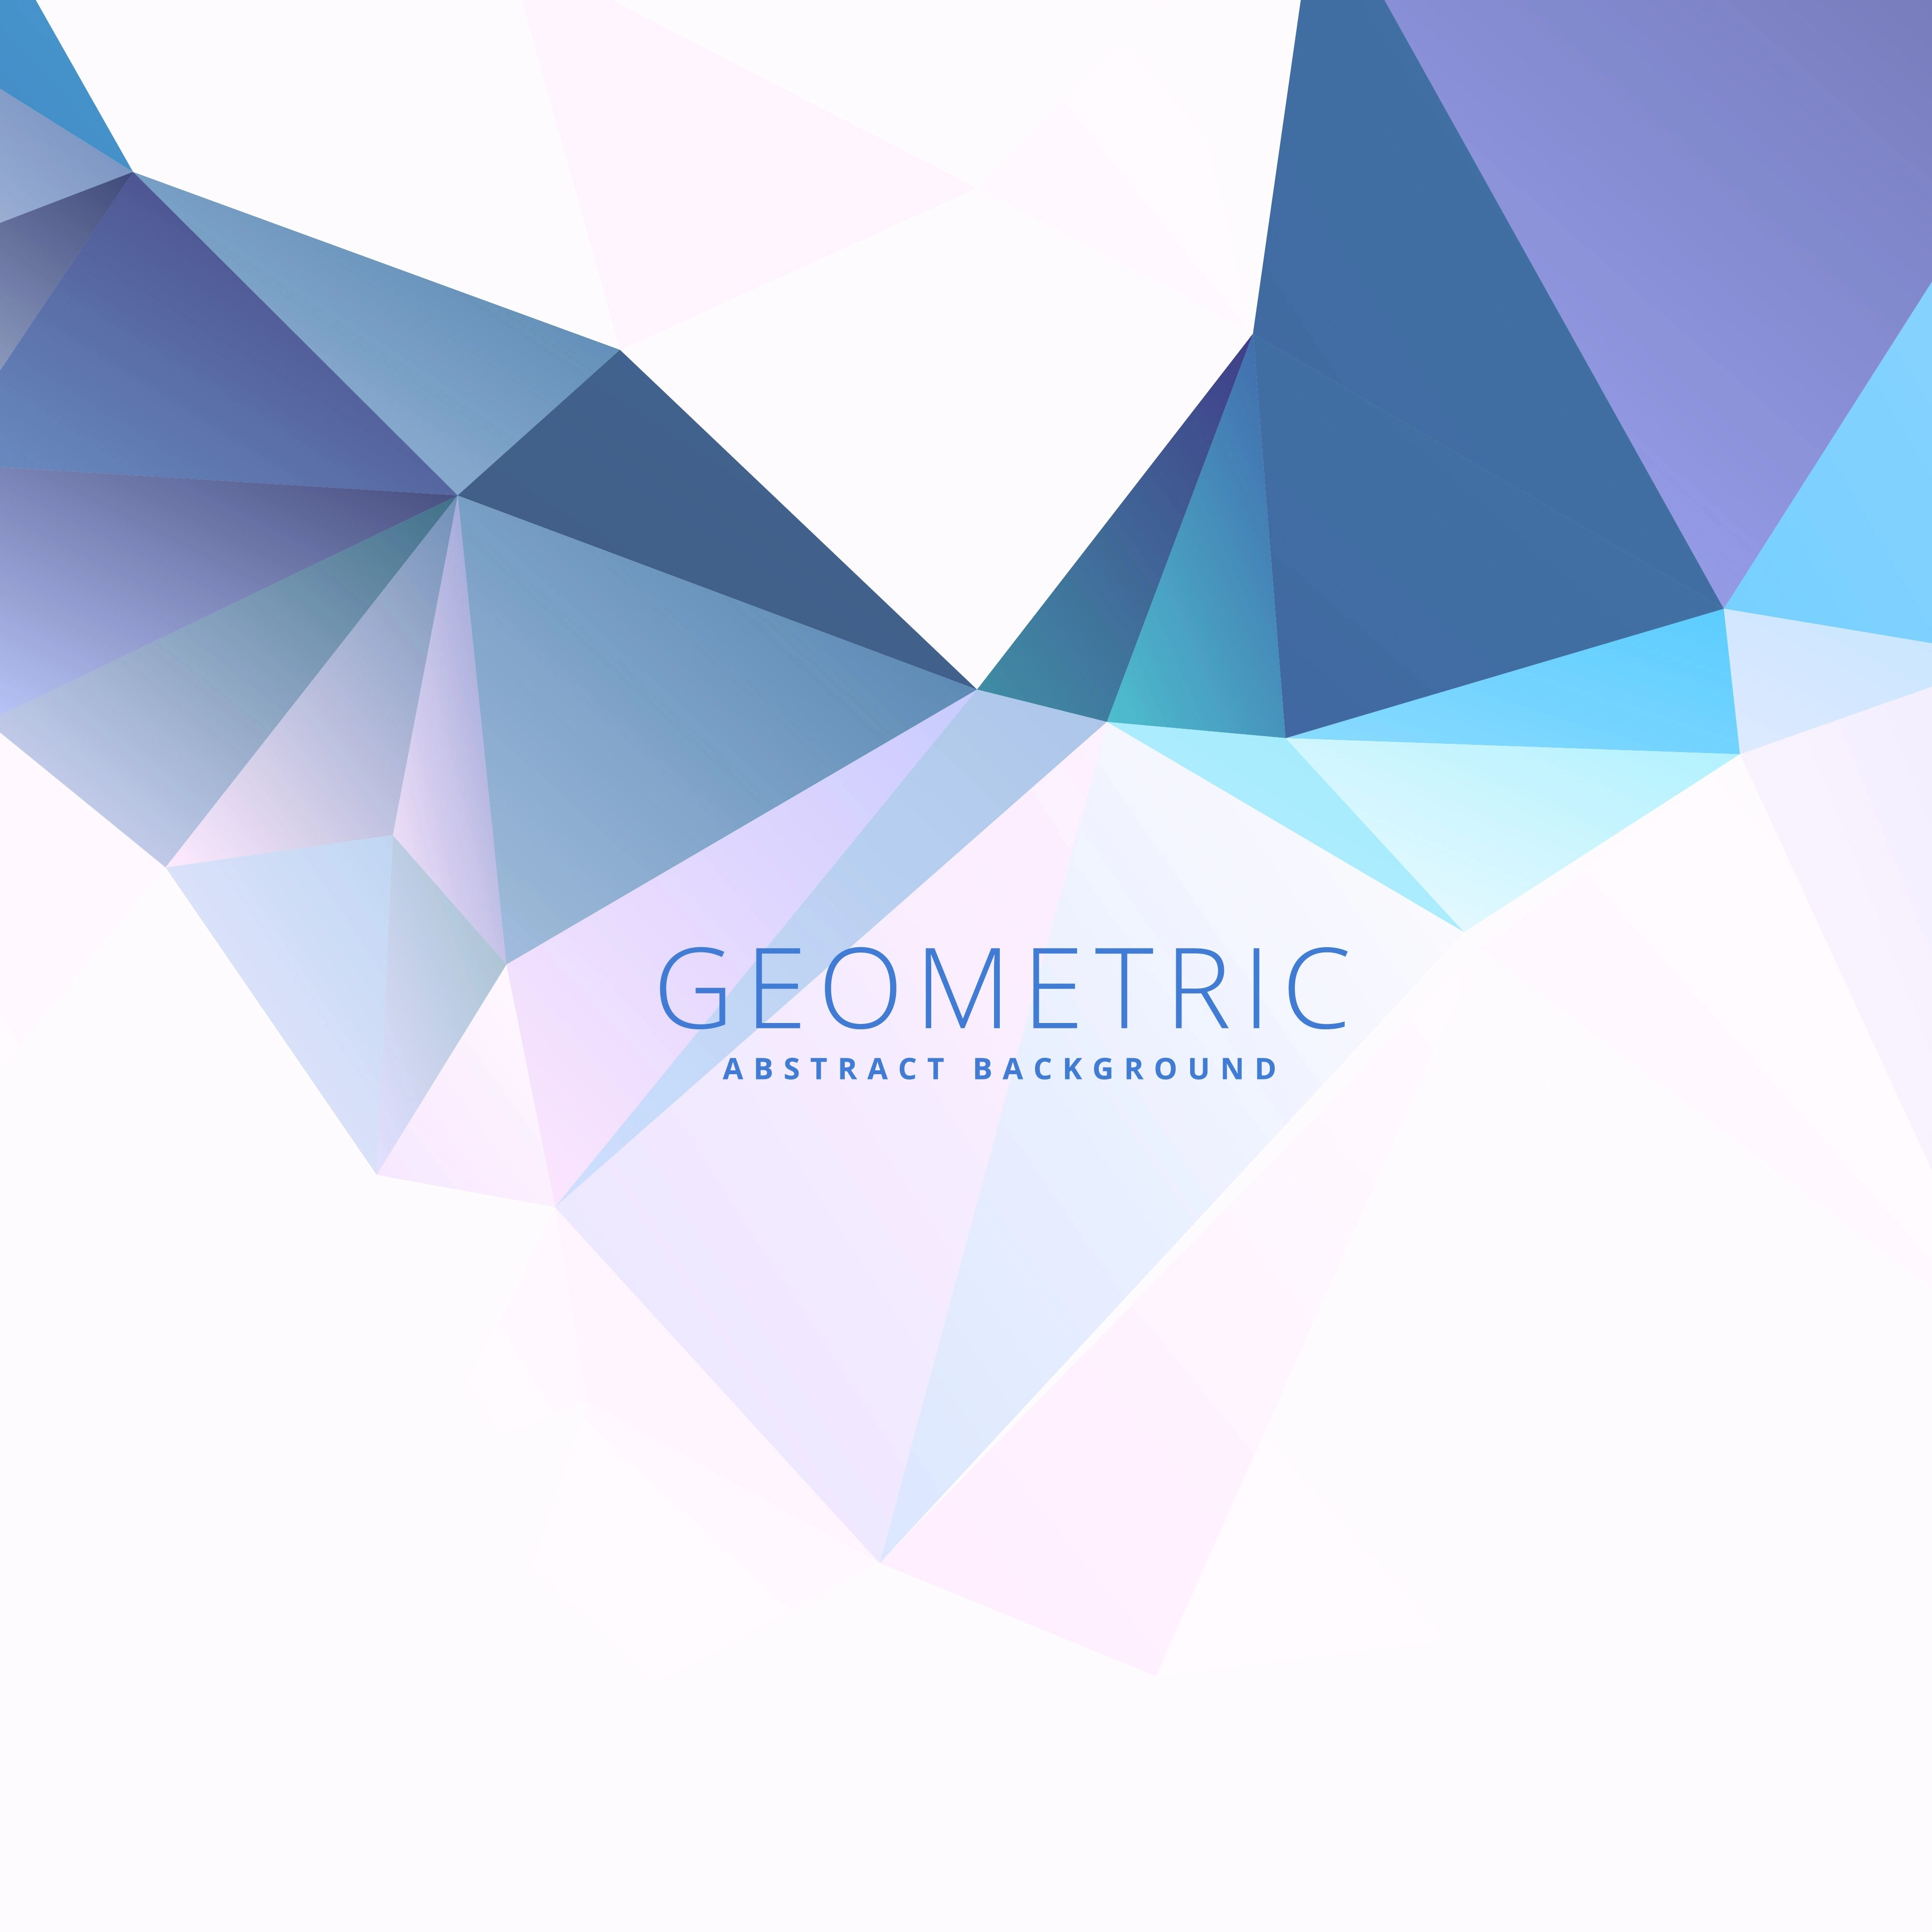 3d Geometric Shapes Wallpaper White Blue Low Poly Background Download Free Vector Art Stock